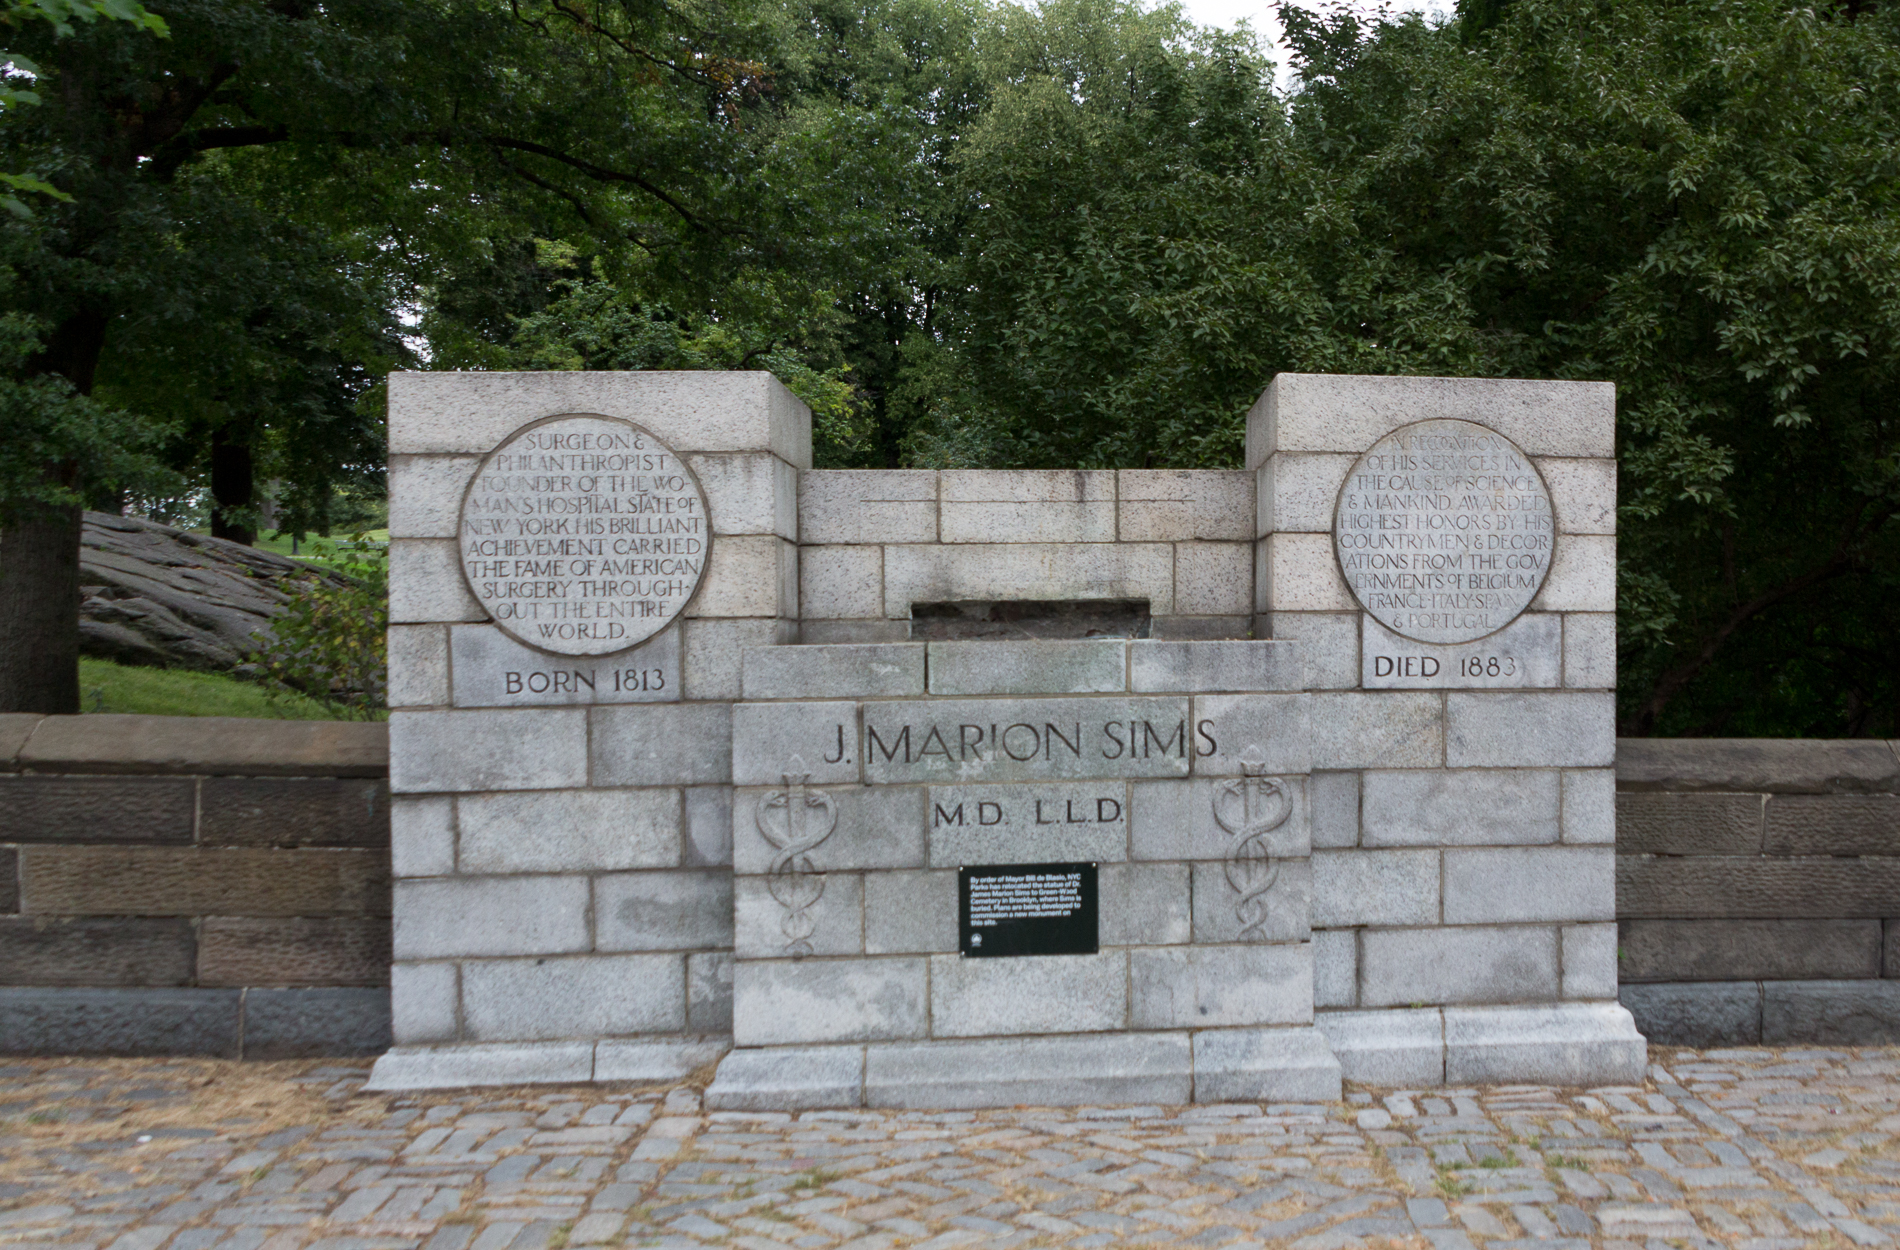 Dr. James Marion Sims [5701]